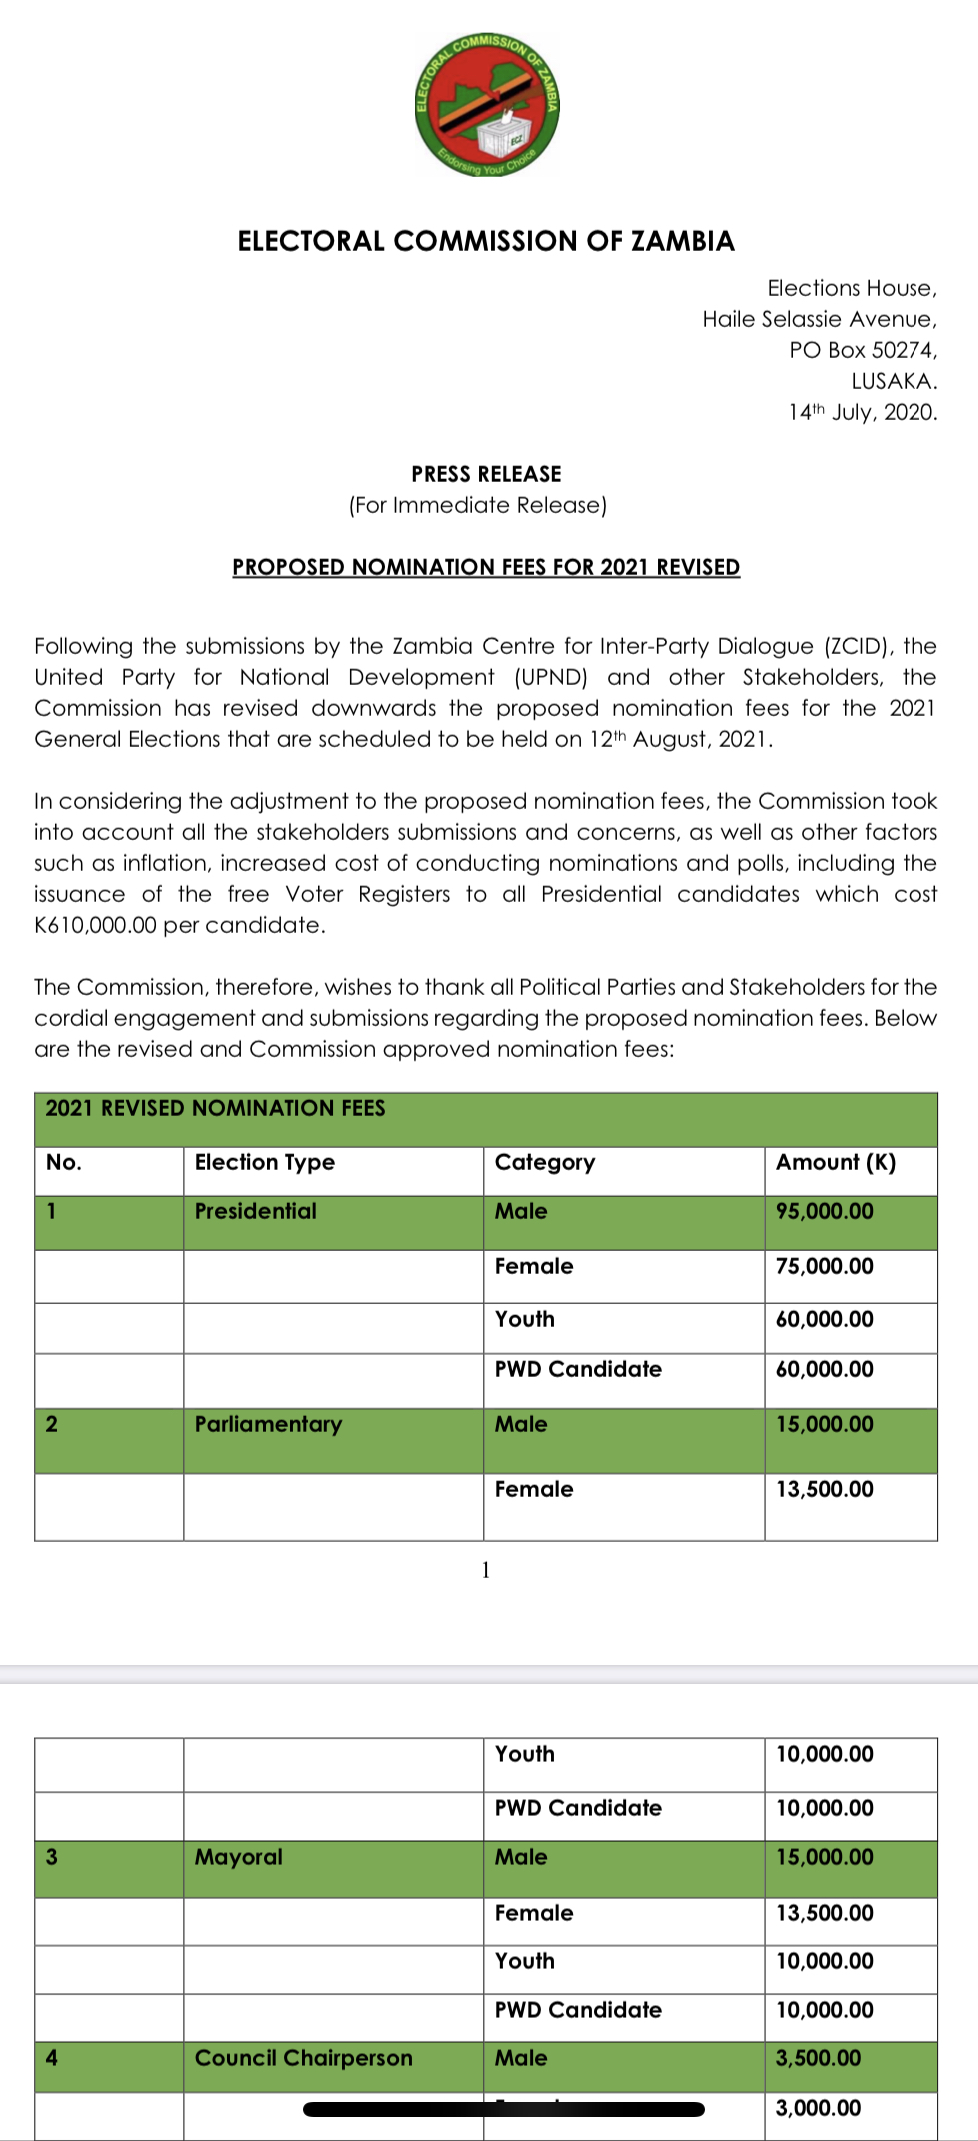 ECZ's revised nomination fees for 2021 elections